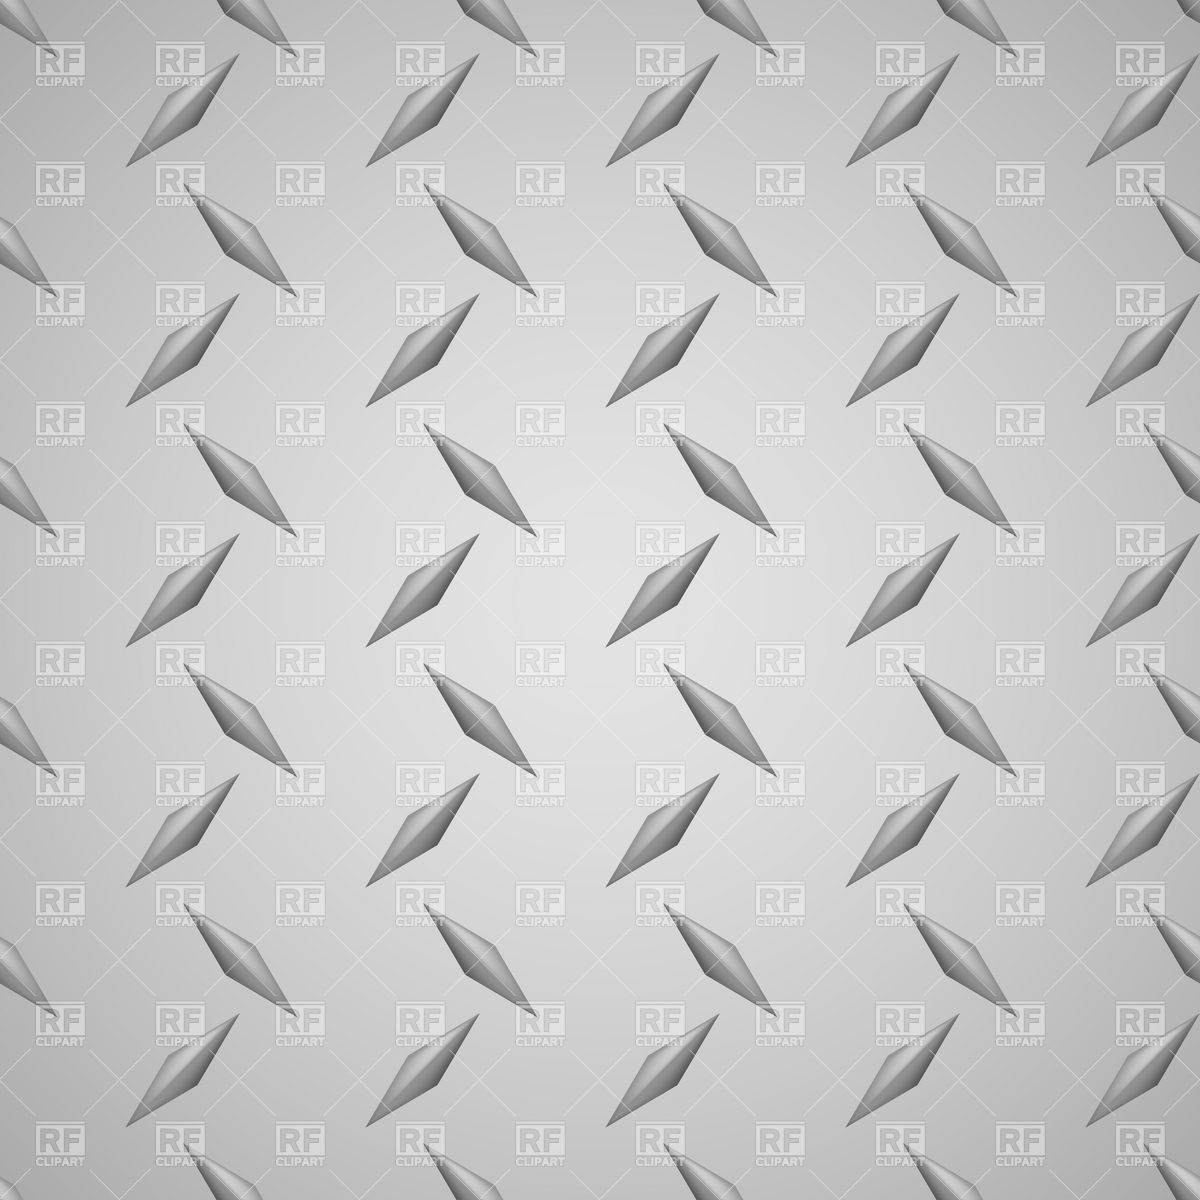 Metal Diamondplate Seamless Texture Download Royalty Free Vector